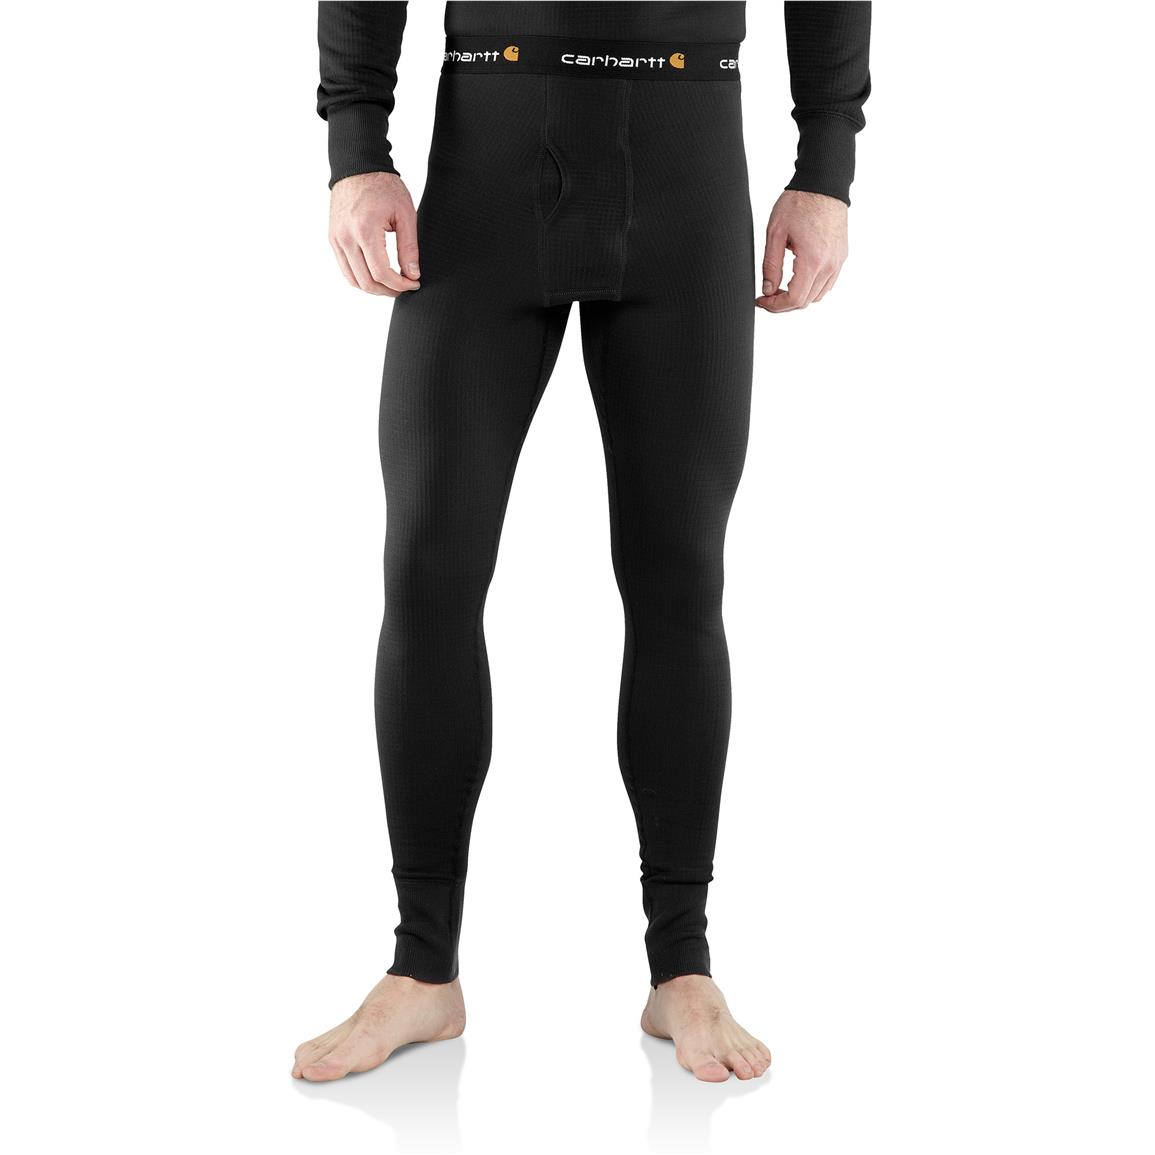 Carhartt Force Men's Super Cold Weather Thermal Underwear Pants ...